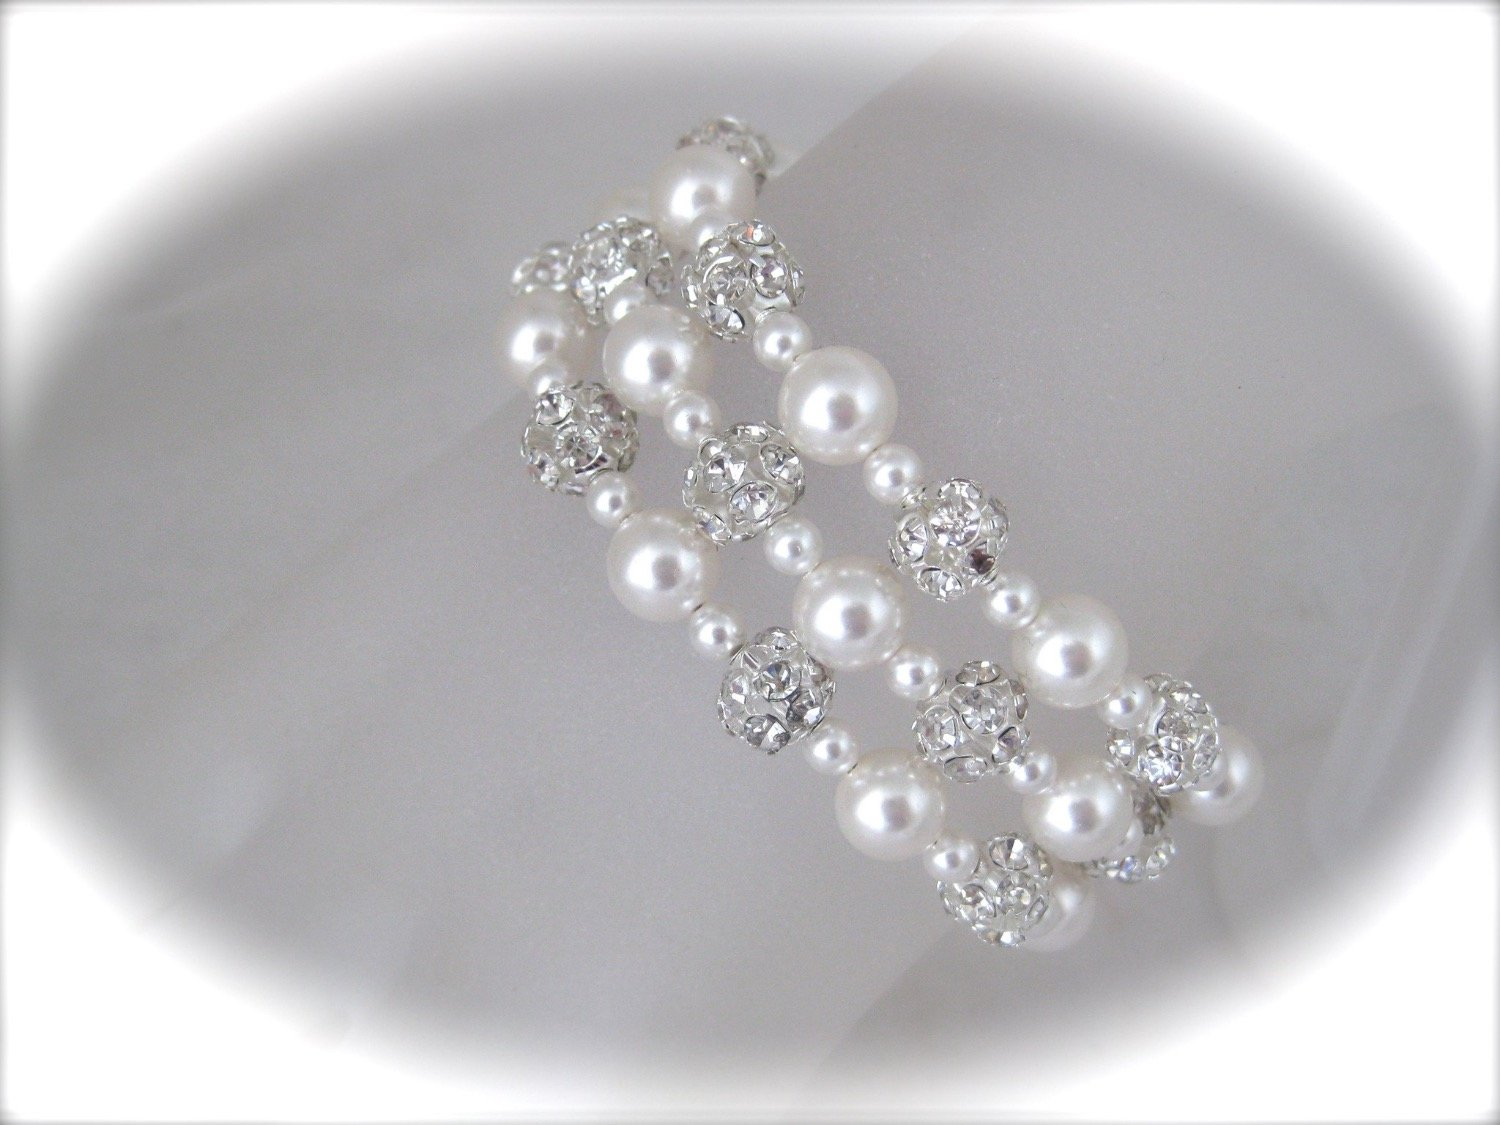 Three strand pearl bracelet wedding jewelry with pearls and crystals - Clairesbridal - 3